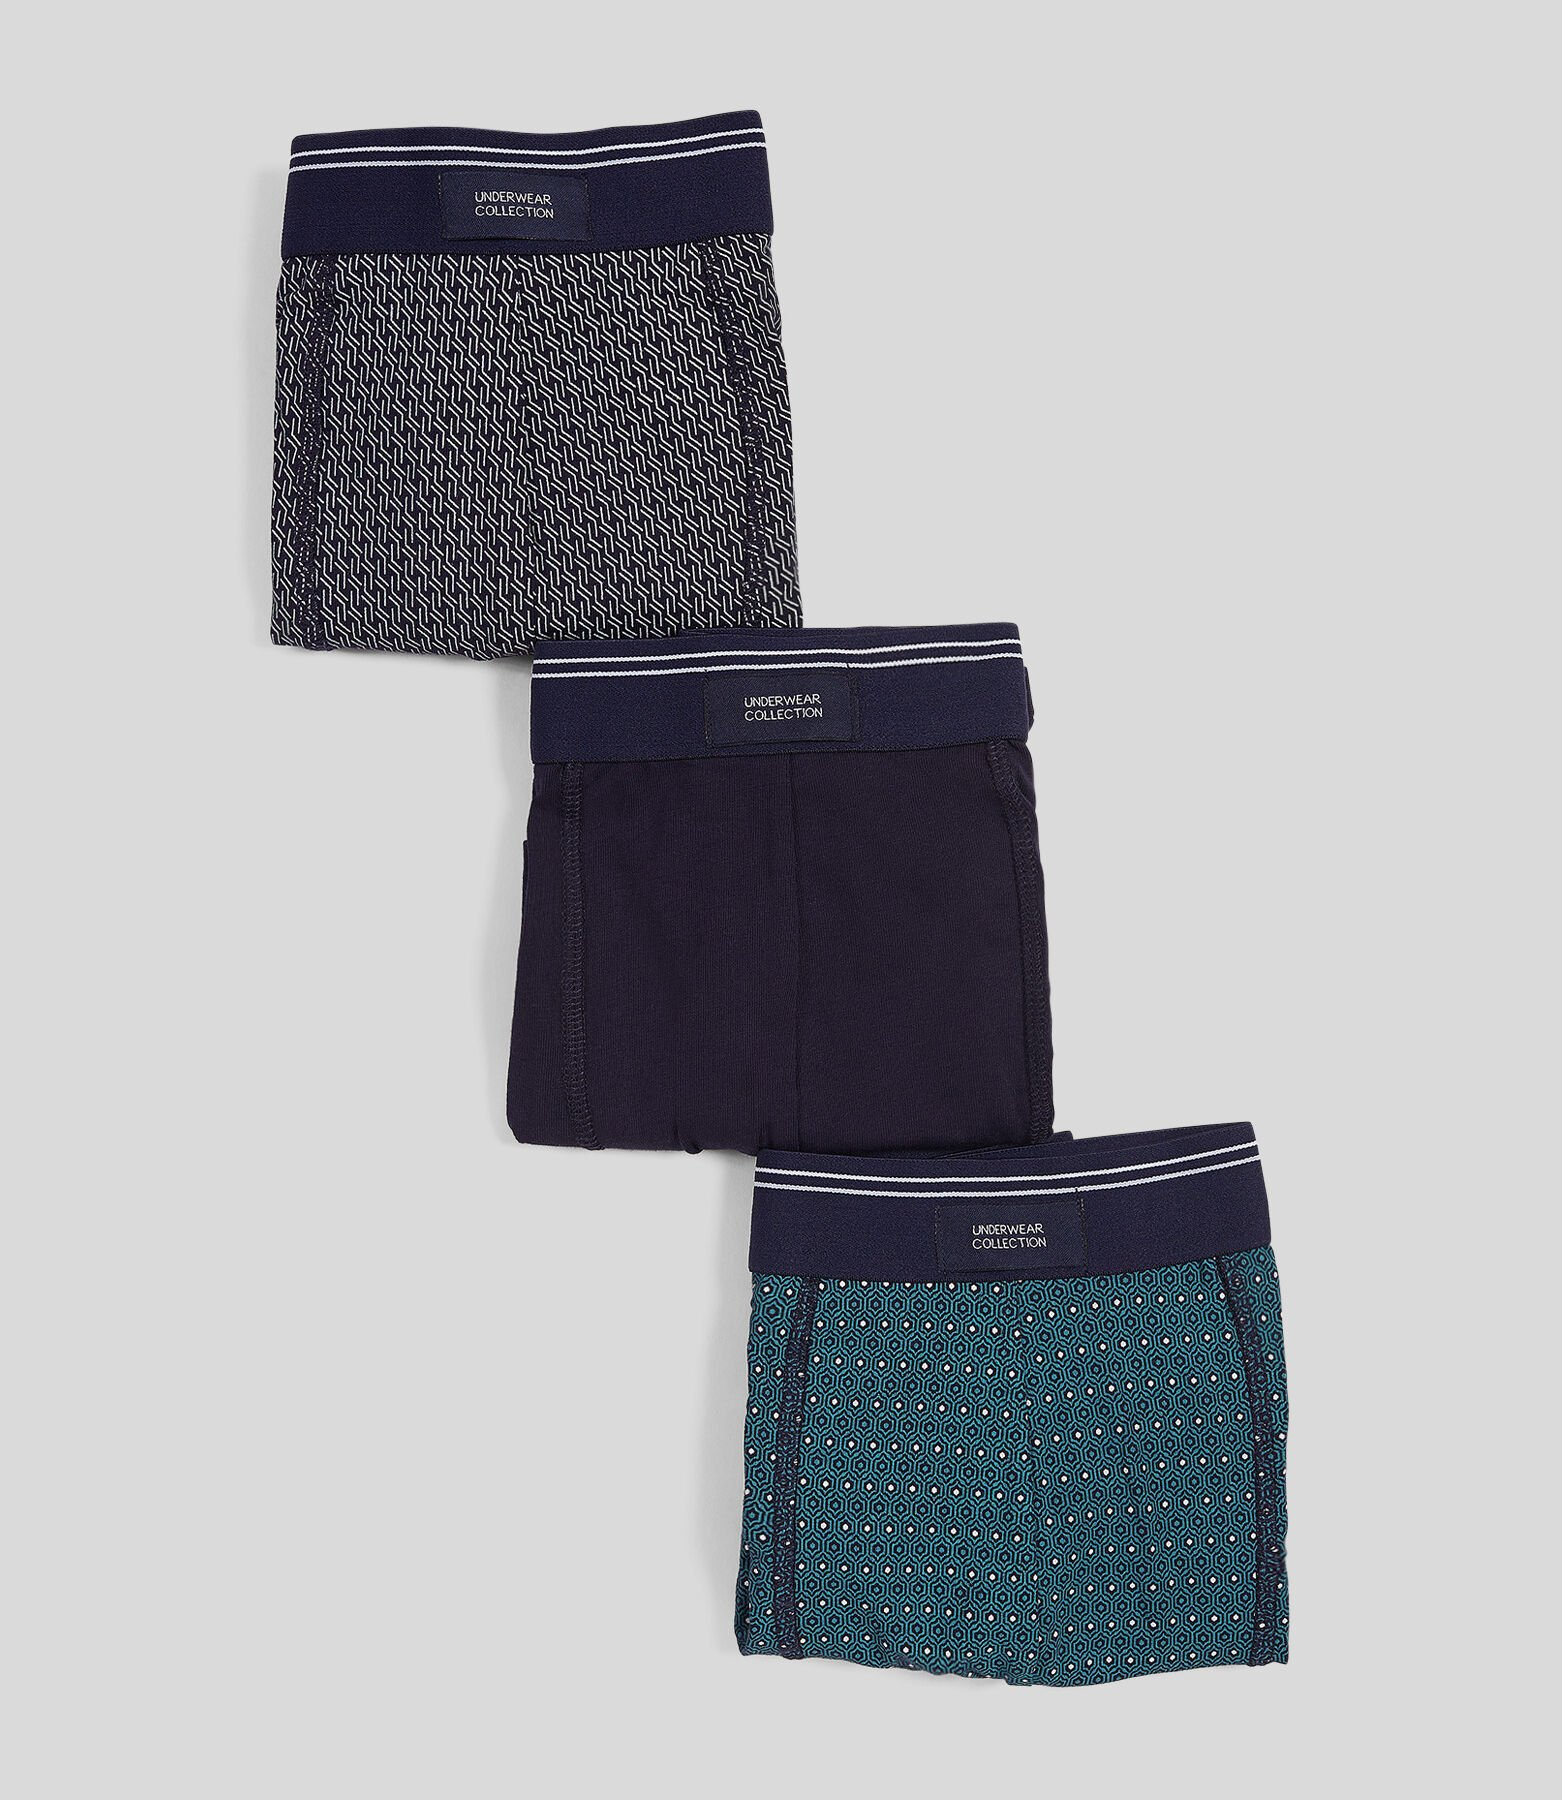 Boxer fantaisie par lot de 3